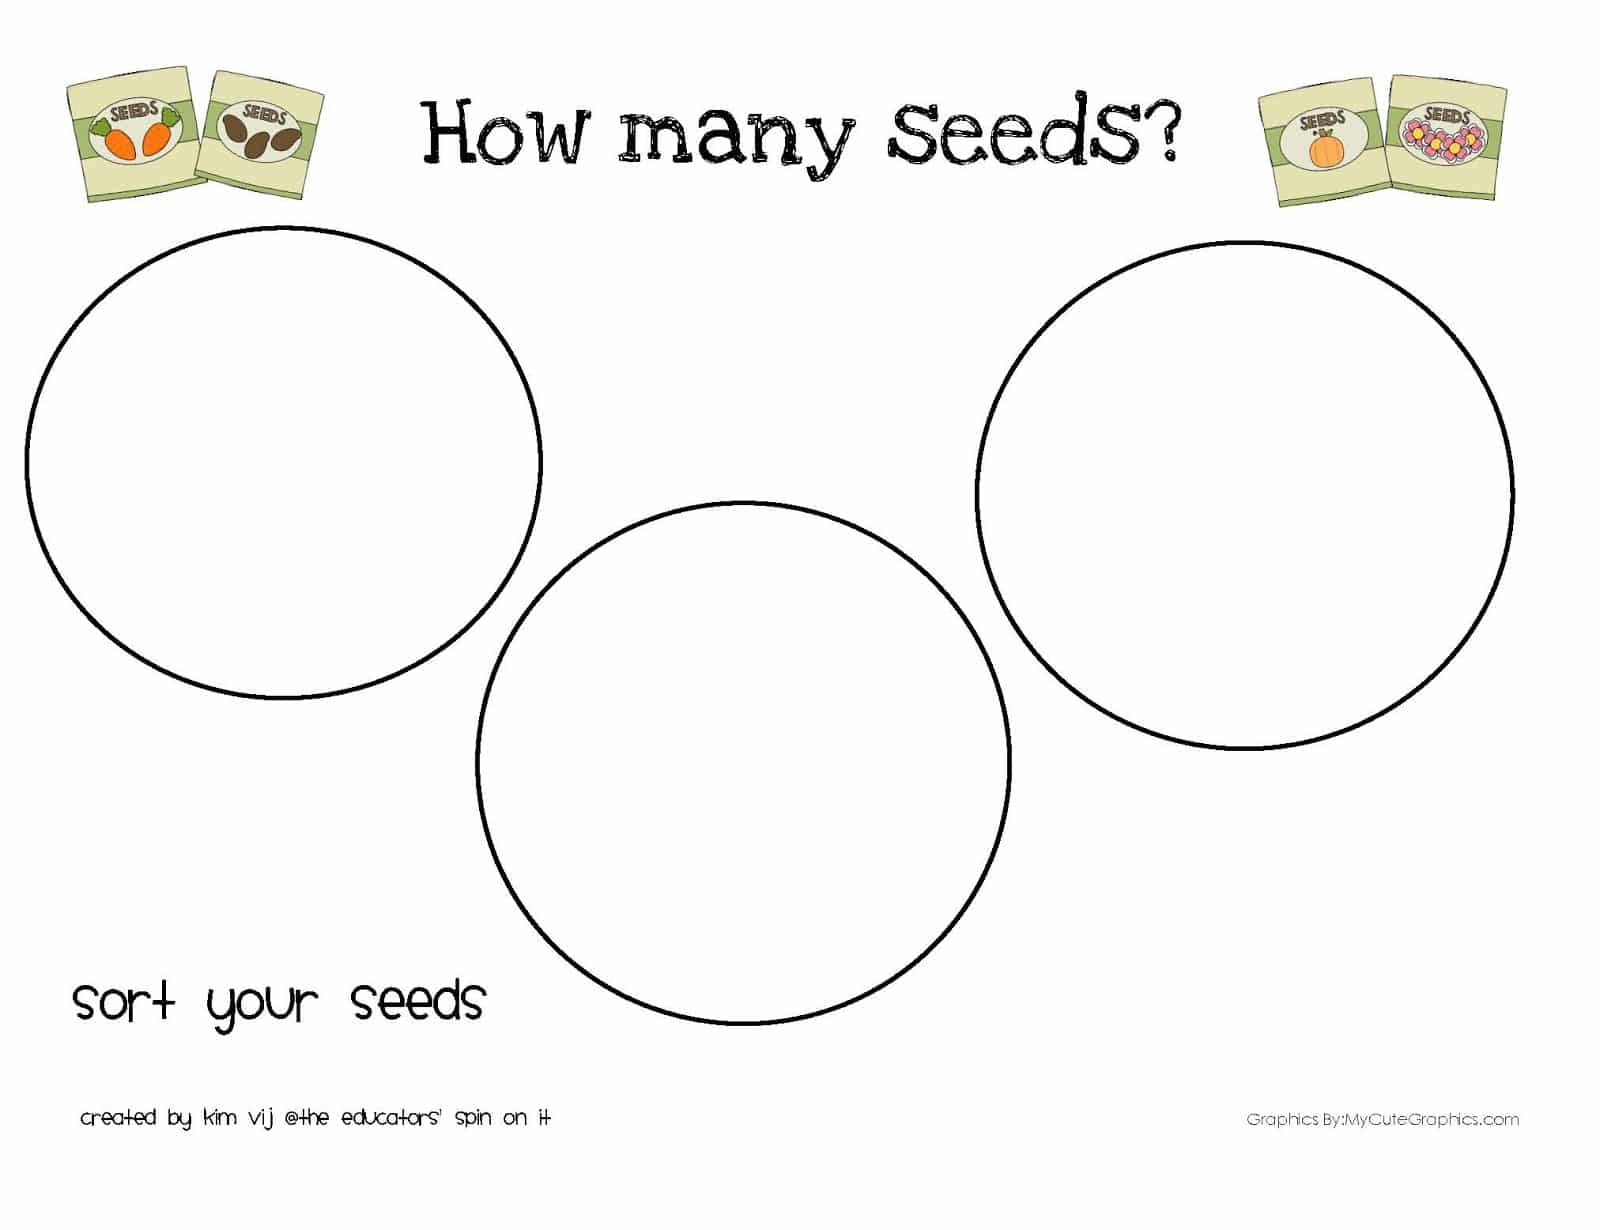 Seed Flower Craft likewise Seed Unit From The Educators Spin On It additionally Howmanyseedsprintableforvbcsummerc  Page likewise Q Encoding Utf   Asin   Format Sl   Id Asinimage   Marketplace Us   Serviceversion   Ws   Tag Thedsponit moreover B B B F Bad C A C Fd. on the tiny seed activities vbc summer camp